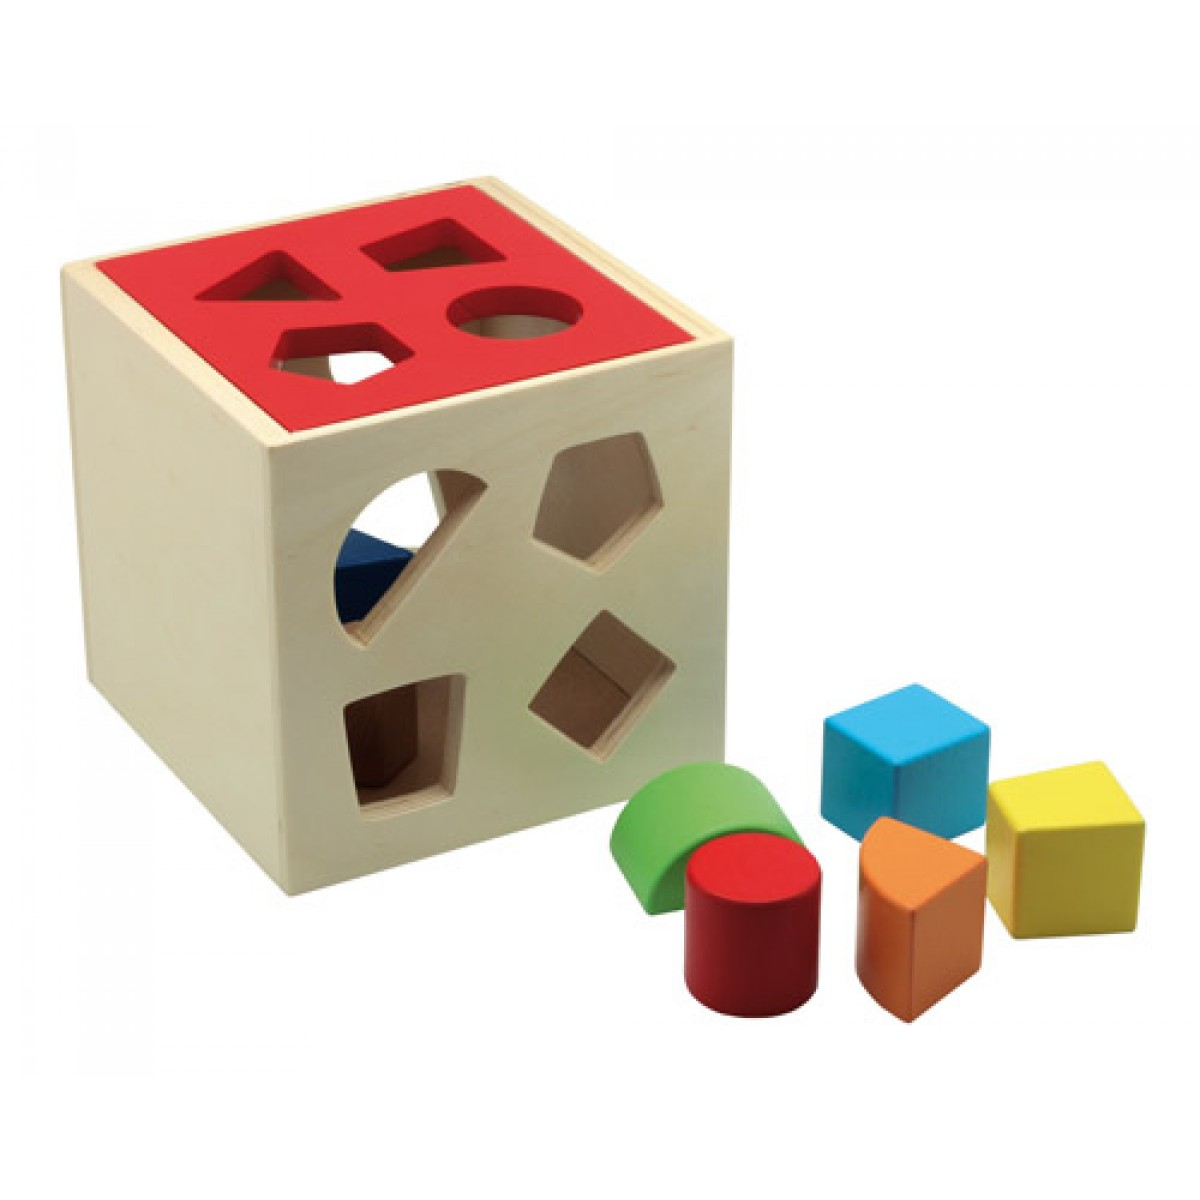 What 39 s the simplest thing you seen someone been able to - Figuras geometricas imposibles ...